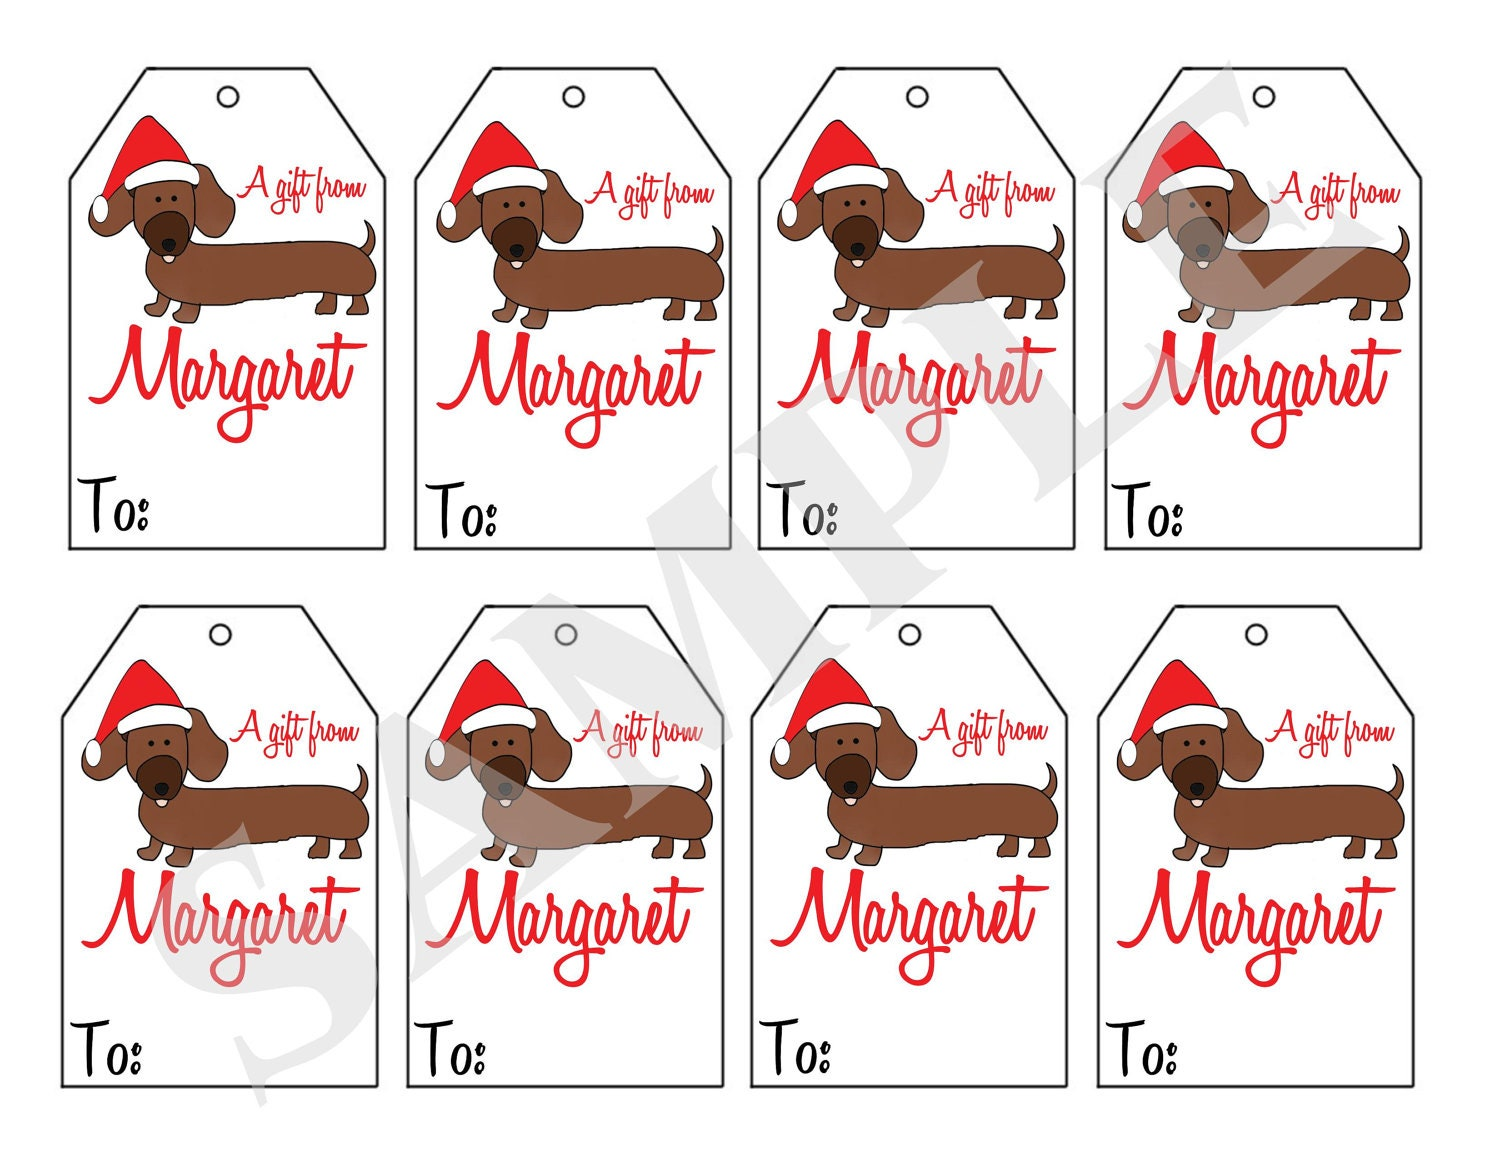 Printable personalized christmas dachshund dog gift tags details printable personalized christmas dachshund dog gift tags dachshund with santa negle Gallery